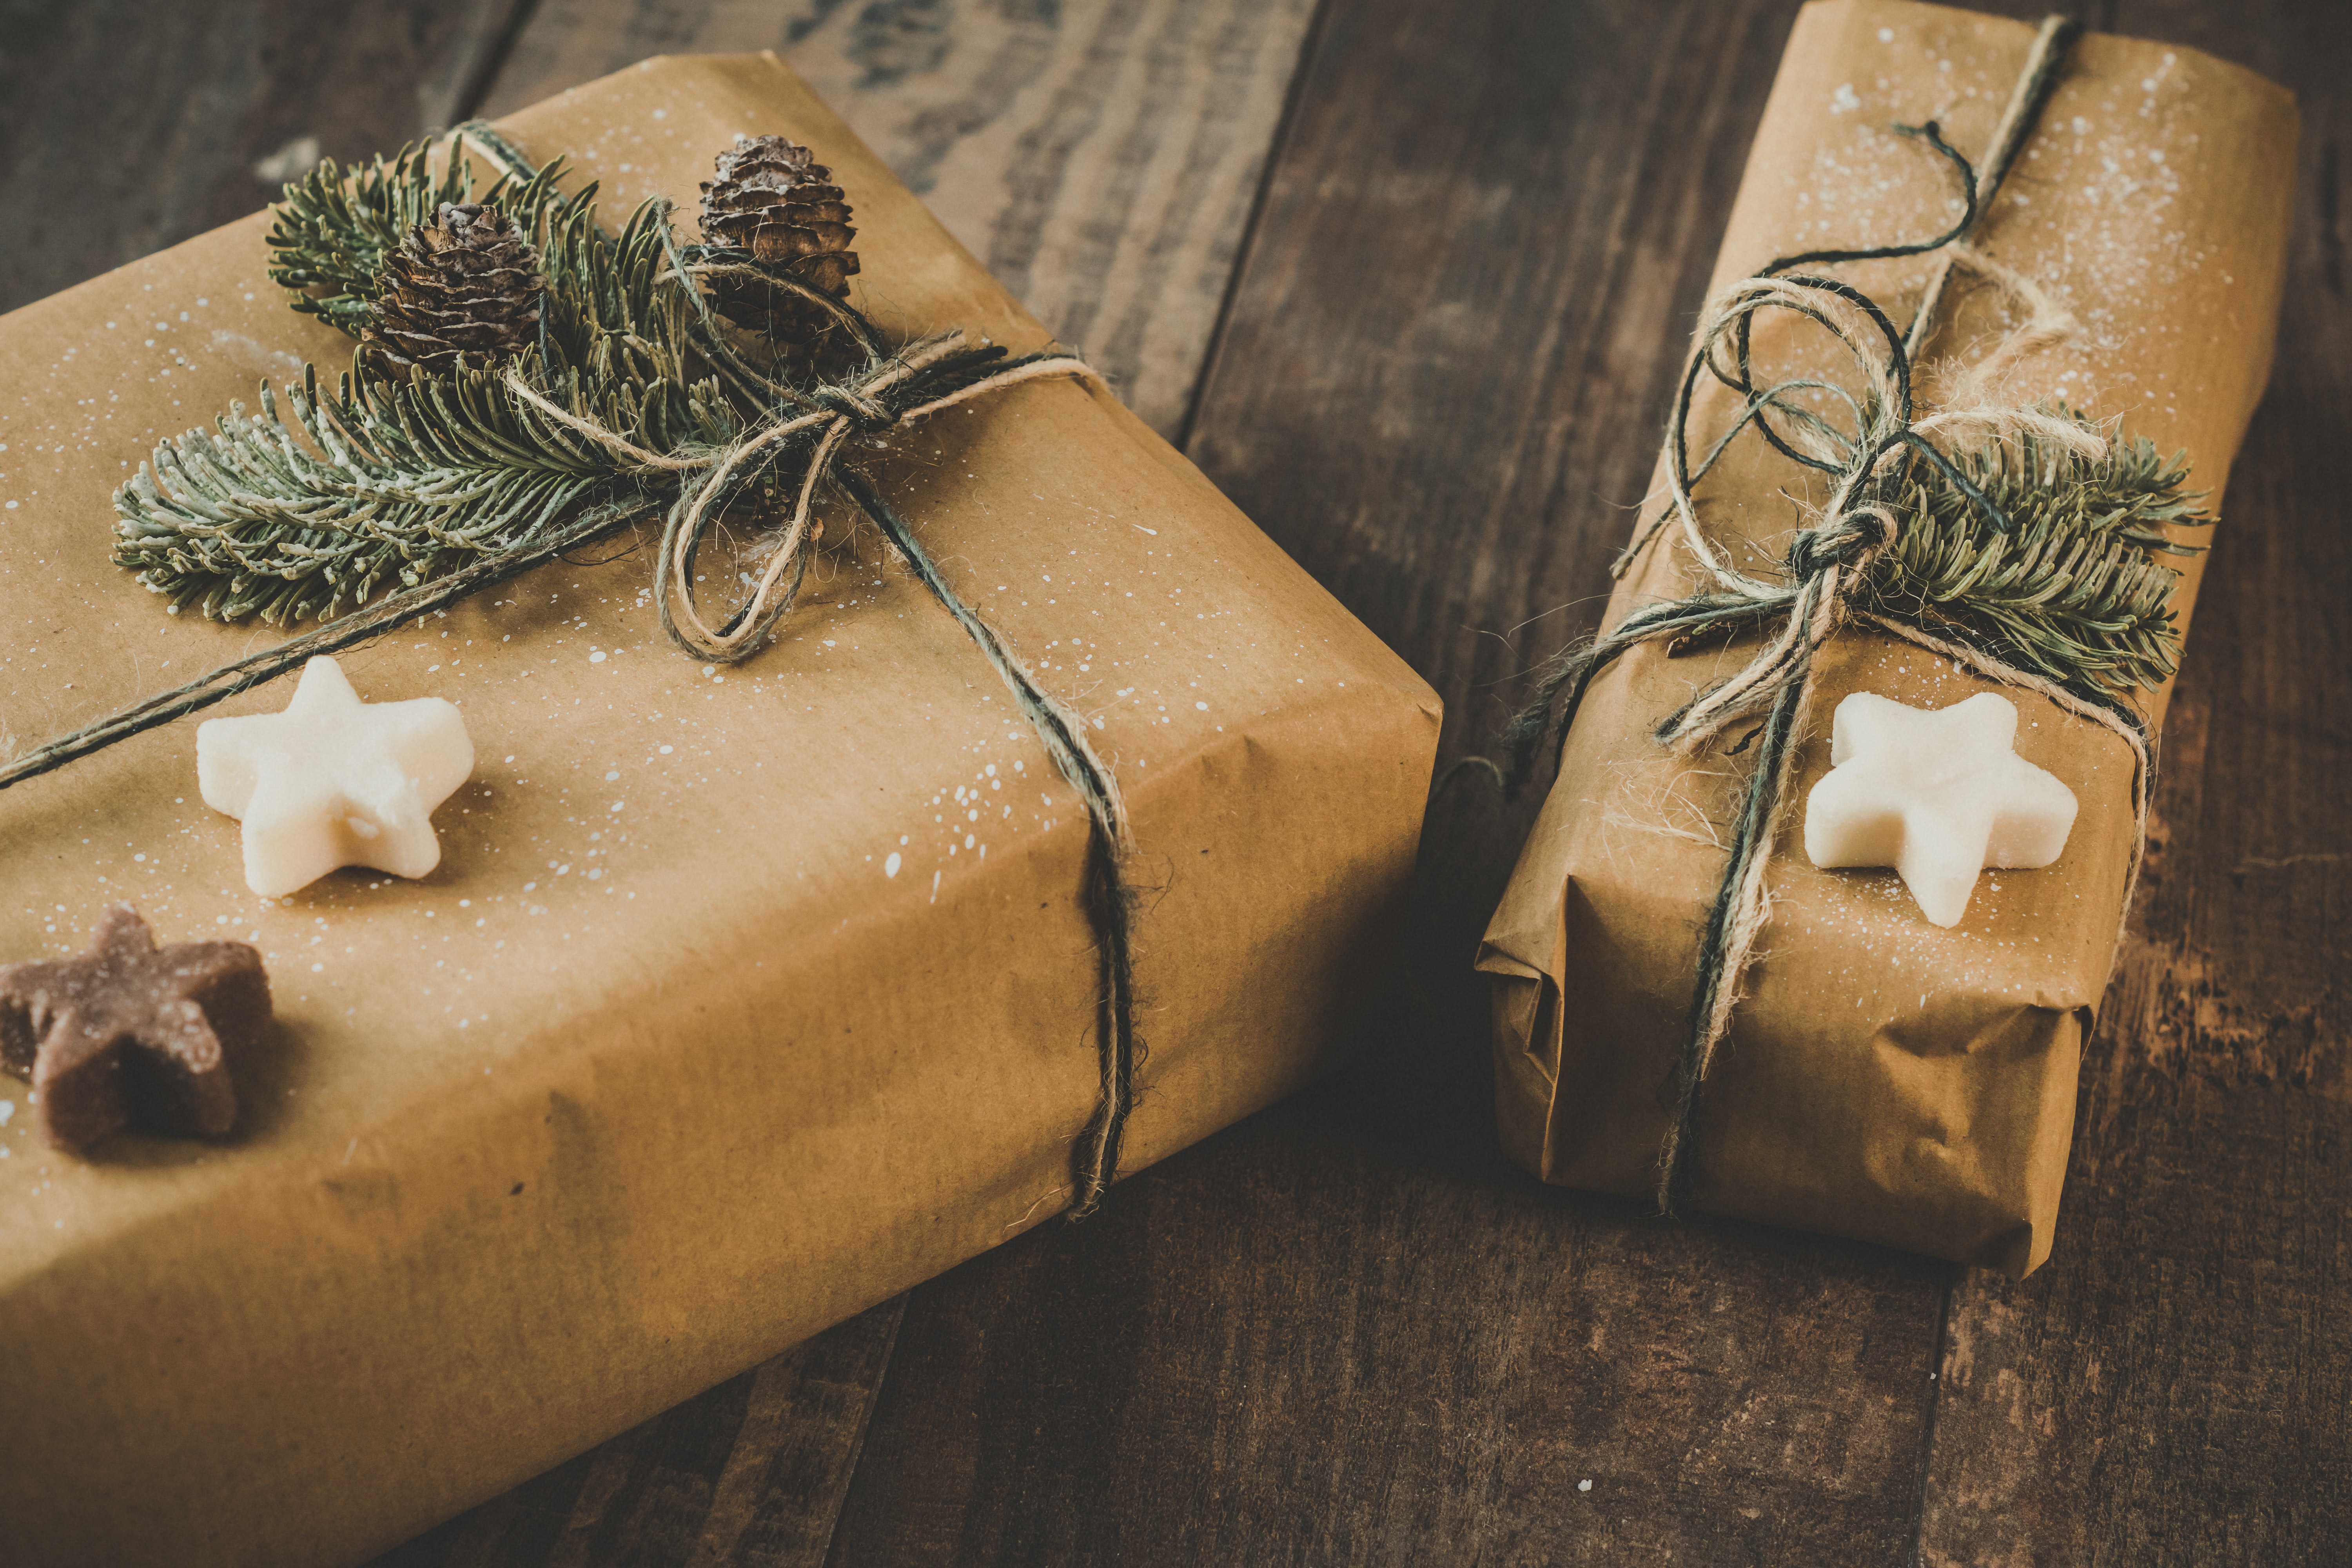 Presents in recycled paper